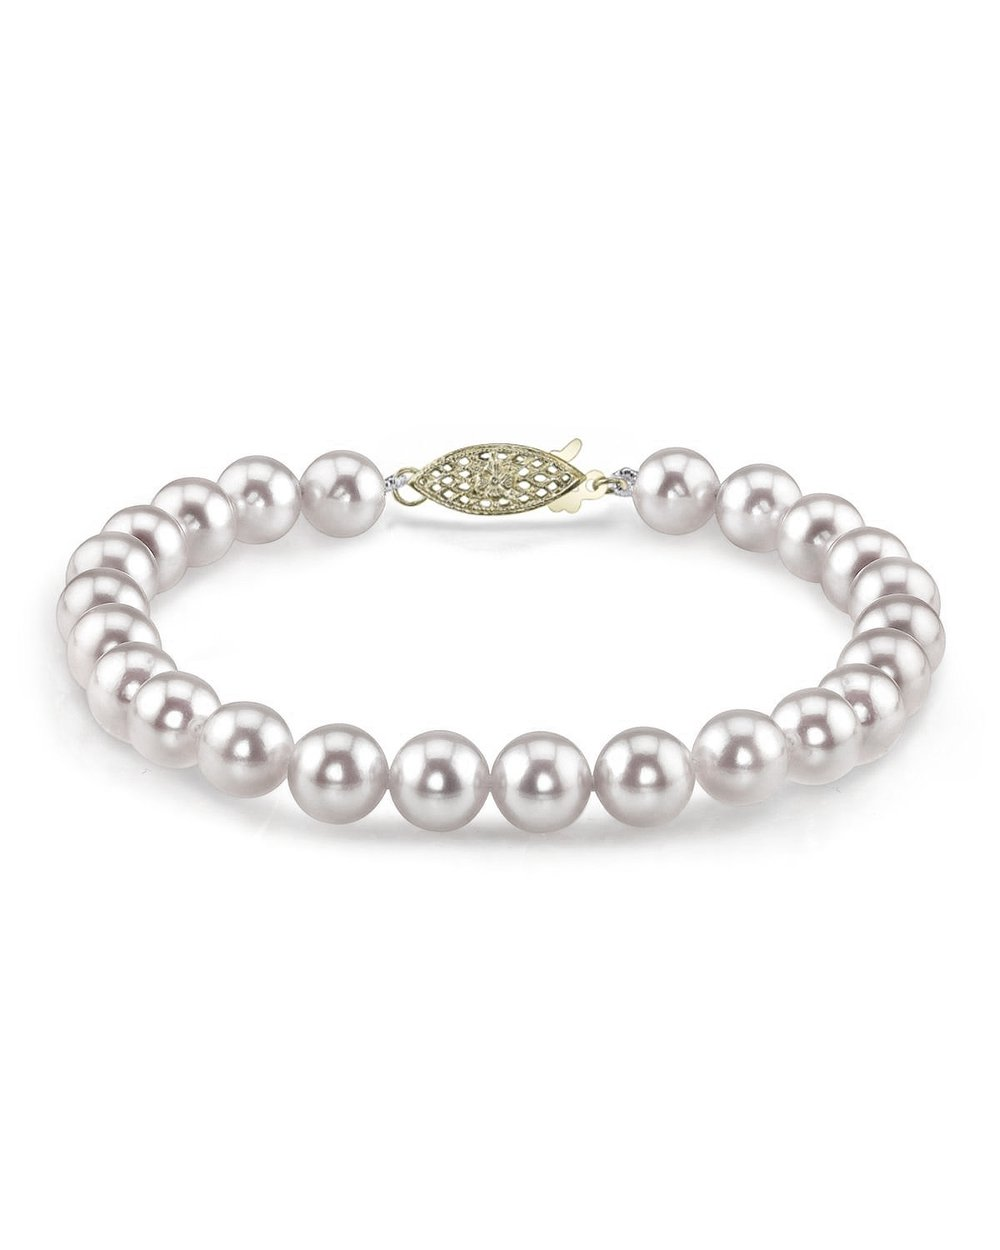 THE PEARL SOURCE 14K Gold 9-9.5mm AAA Quality Round White Japanese Akoya Saltwater Cultured Pearl Bracelet for Women by The Pearl Source